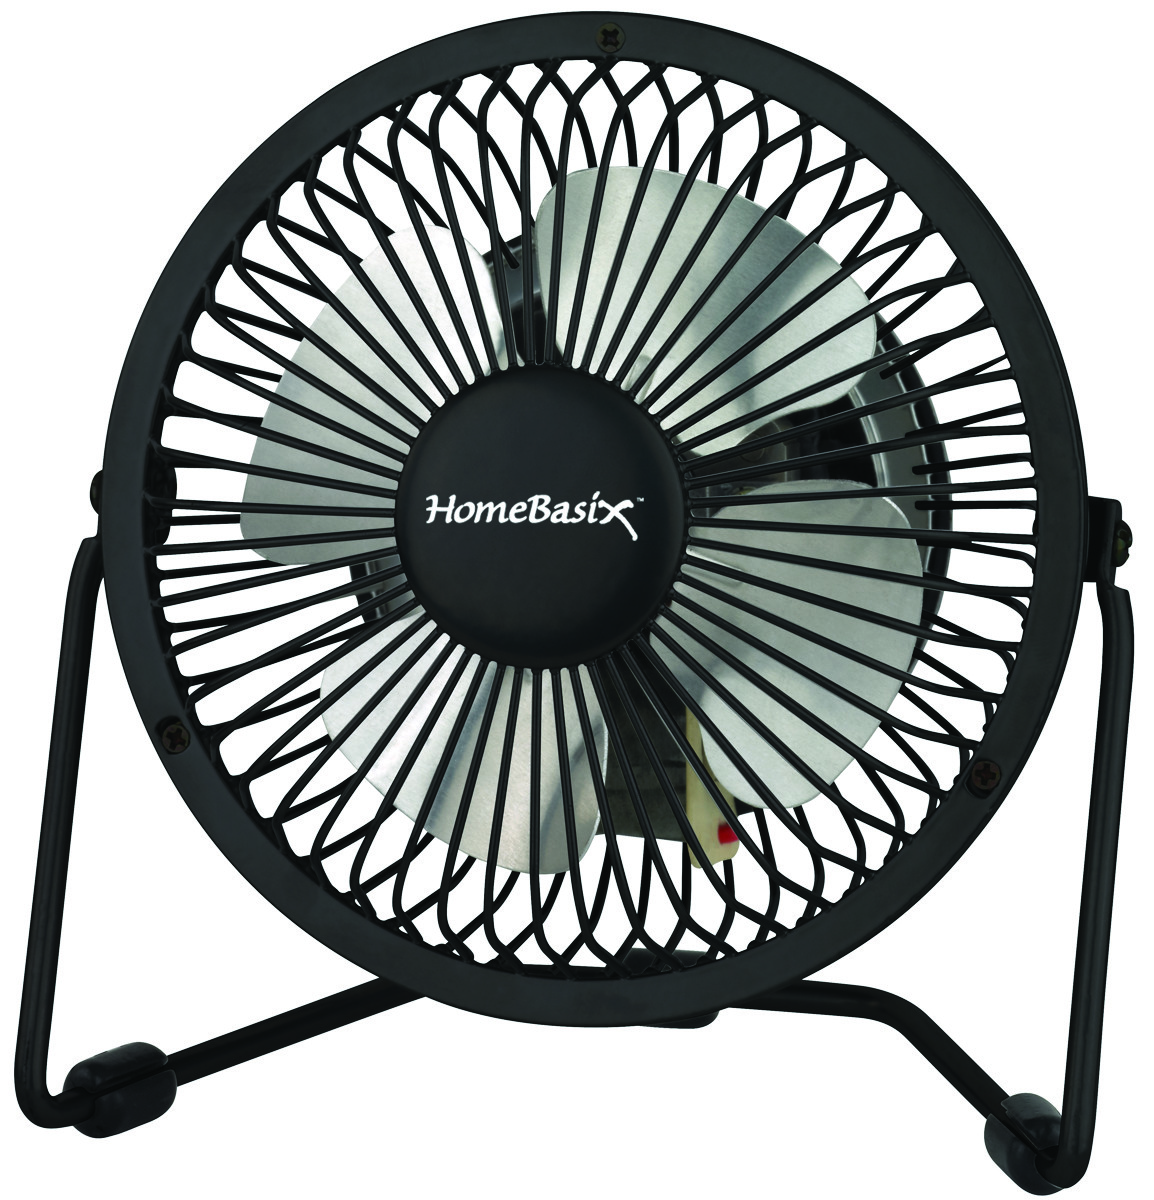 Power Zone CZHV4RSB-BK Fan Mini Black 4 Inch 1 Speed